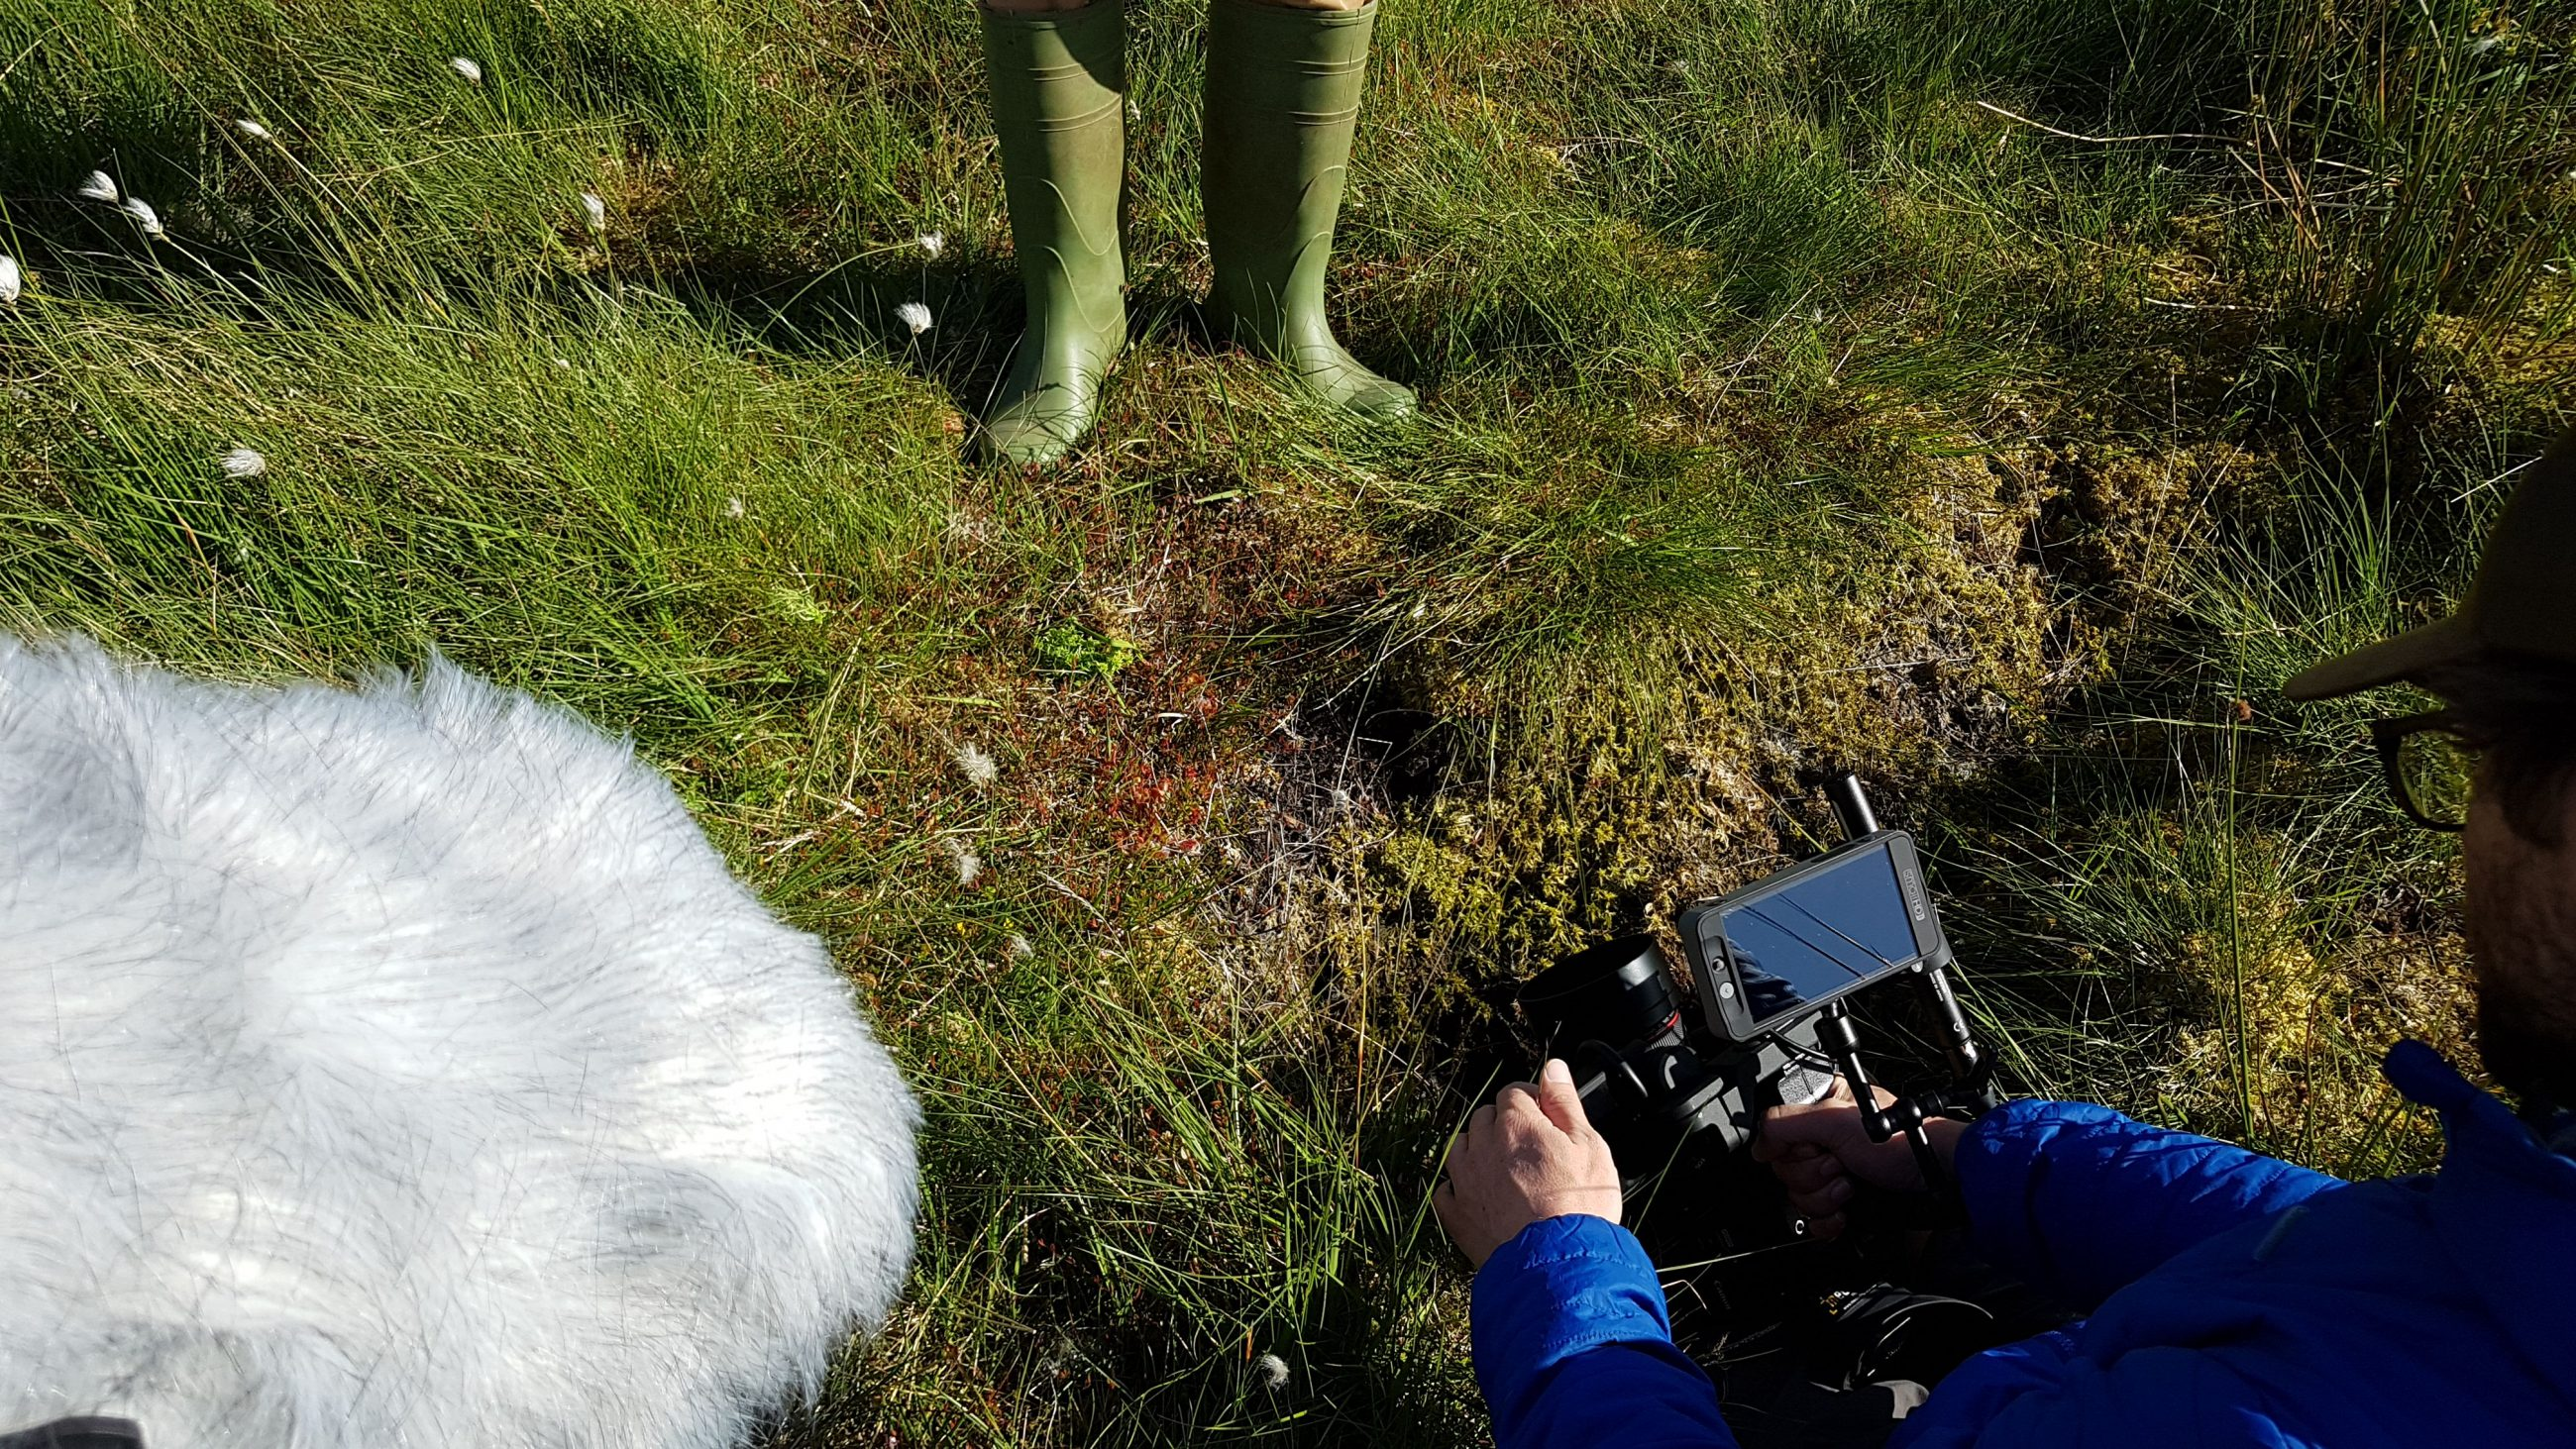 Benjamin Sadd (Director of Photography) capturing some welly shots for The Carbon Farmer - Behind the scenes of The Carbon Farmer